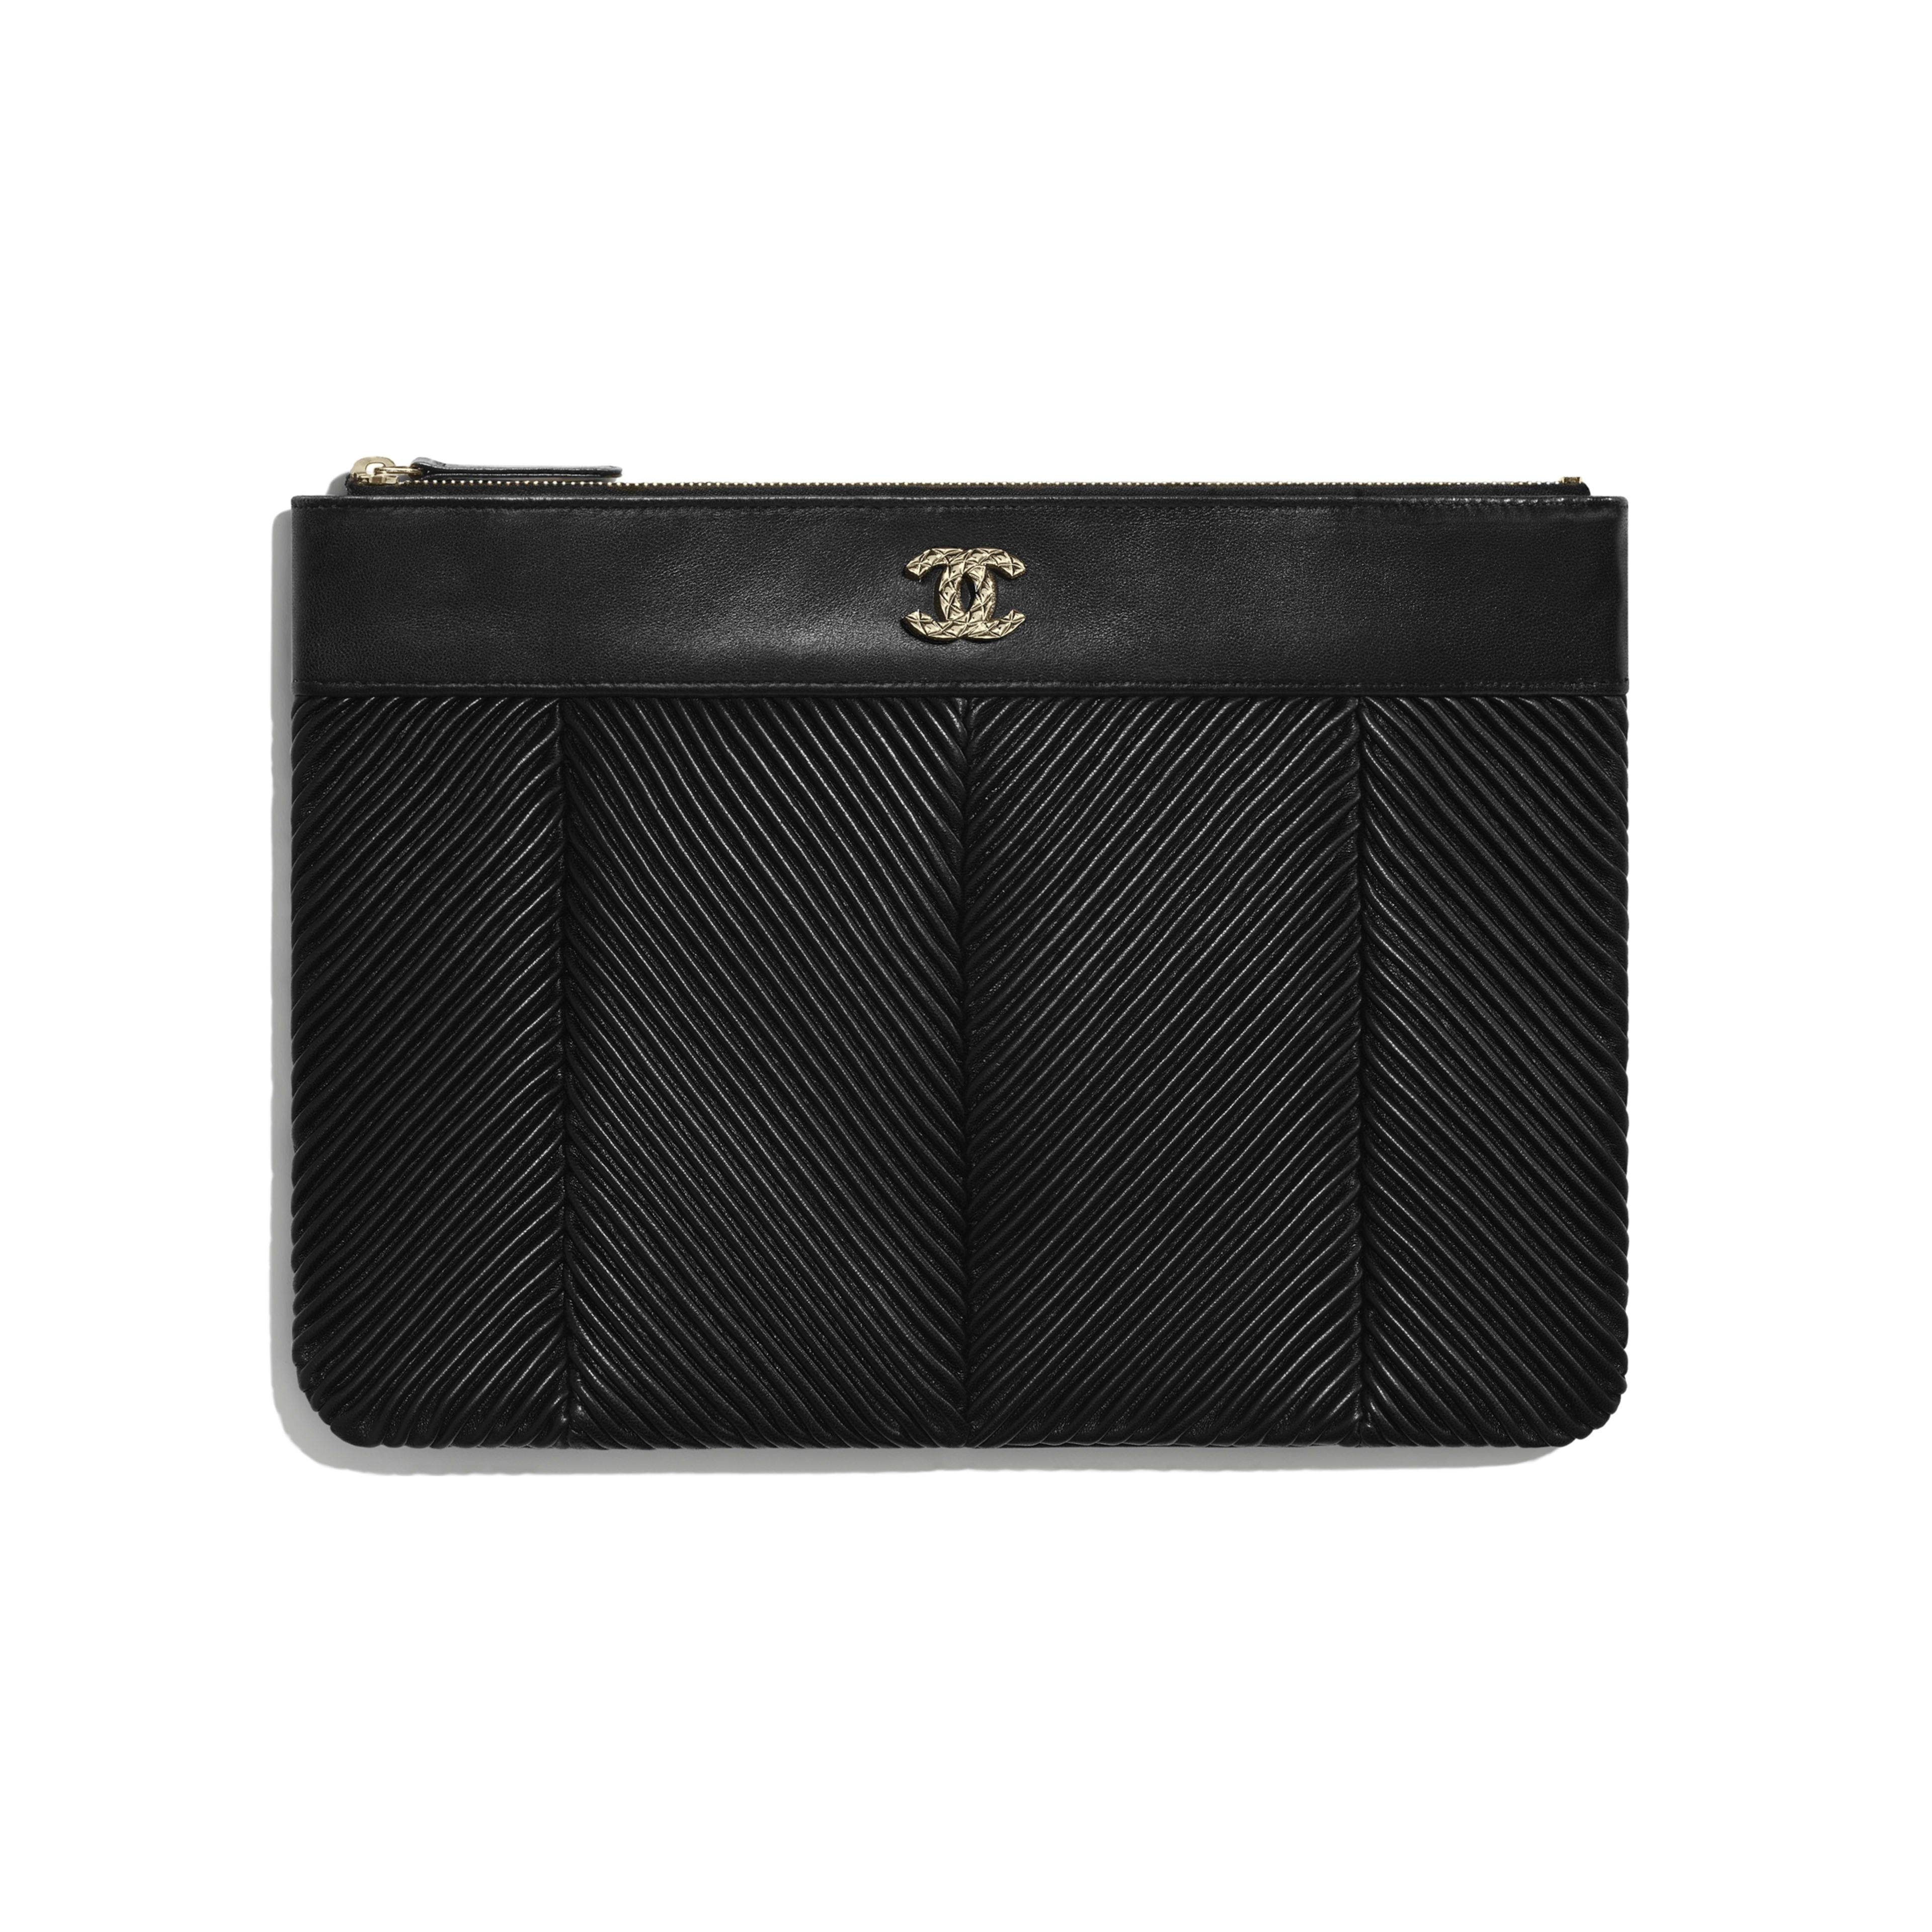 Pouch - Black - Lambskin & Gold-Tone Metal - Default view - see full sized version